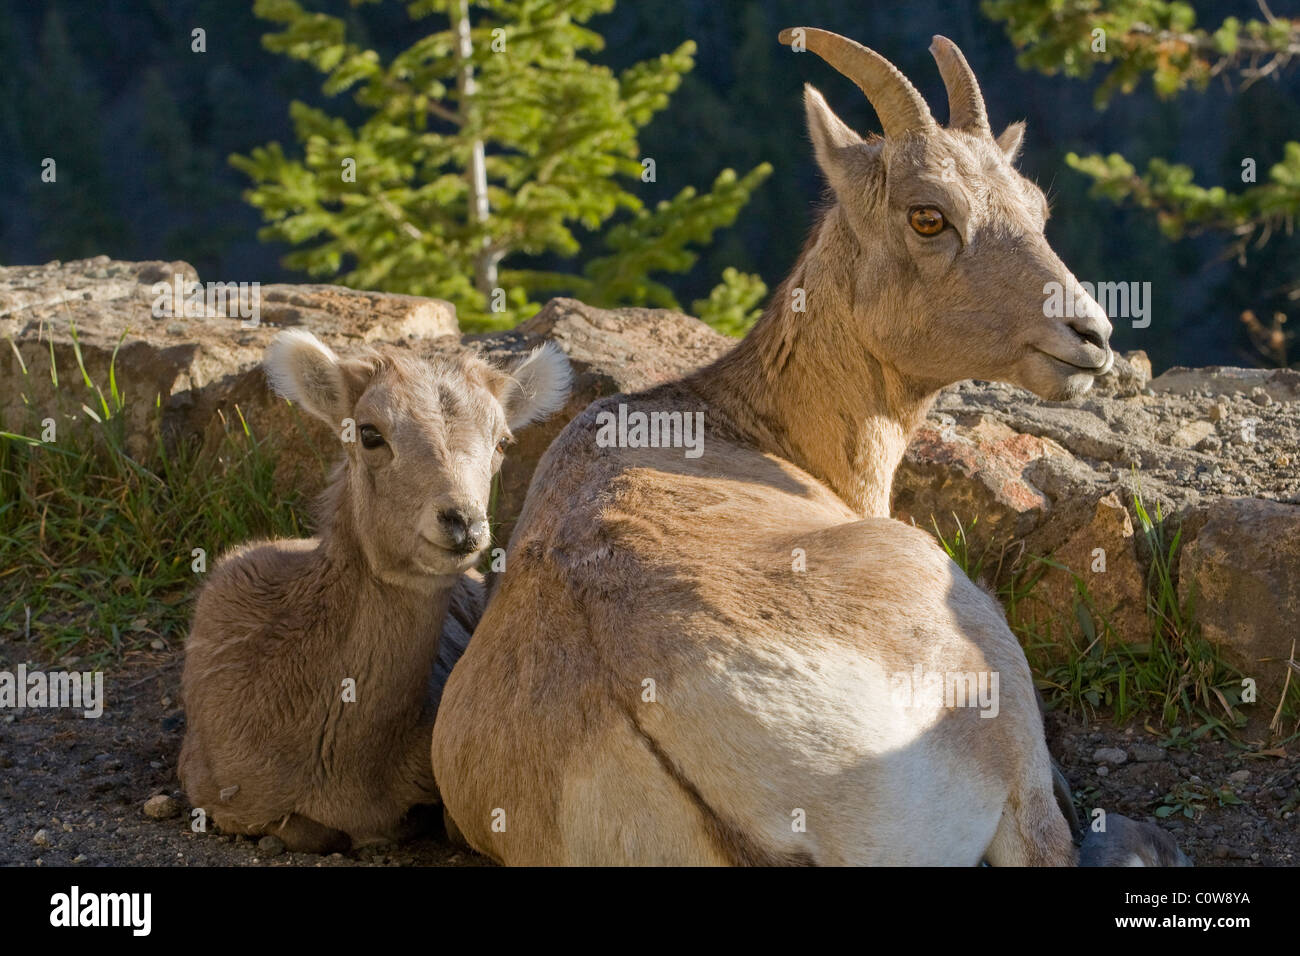 Female Big Horn Sheep (Ovis canadensis) and offspring - Stock Image